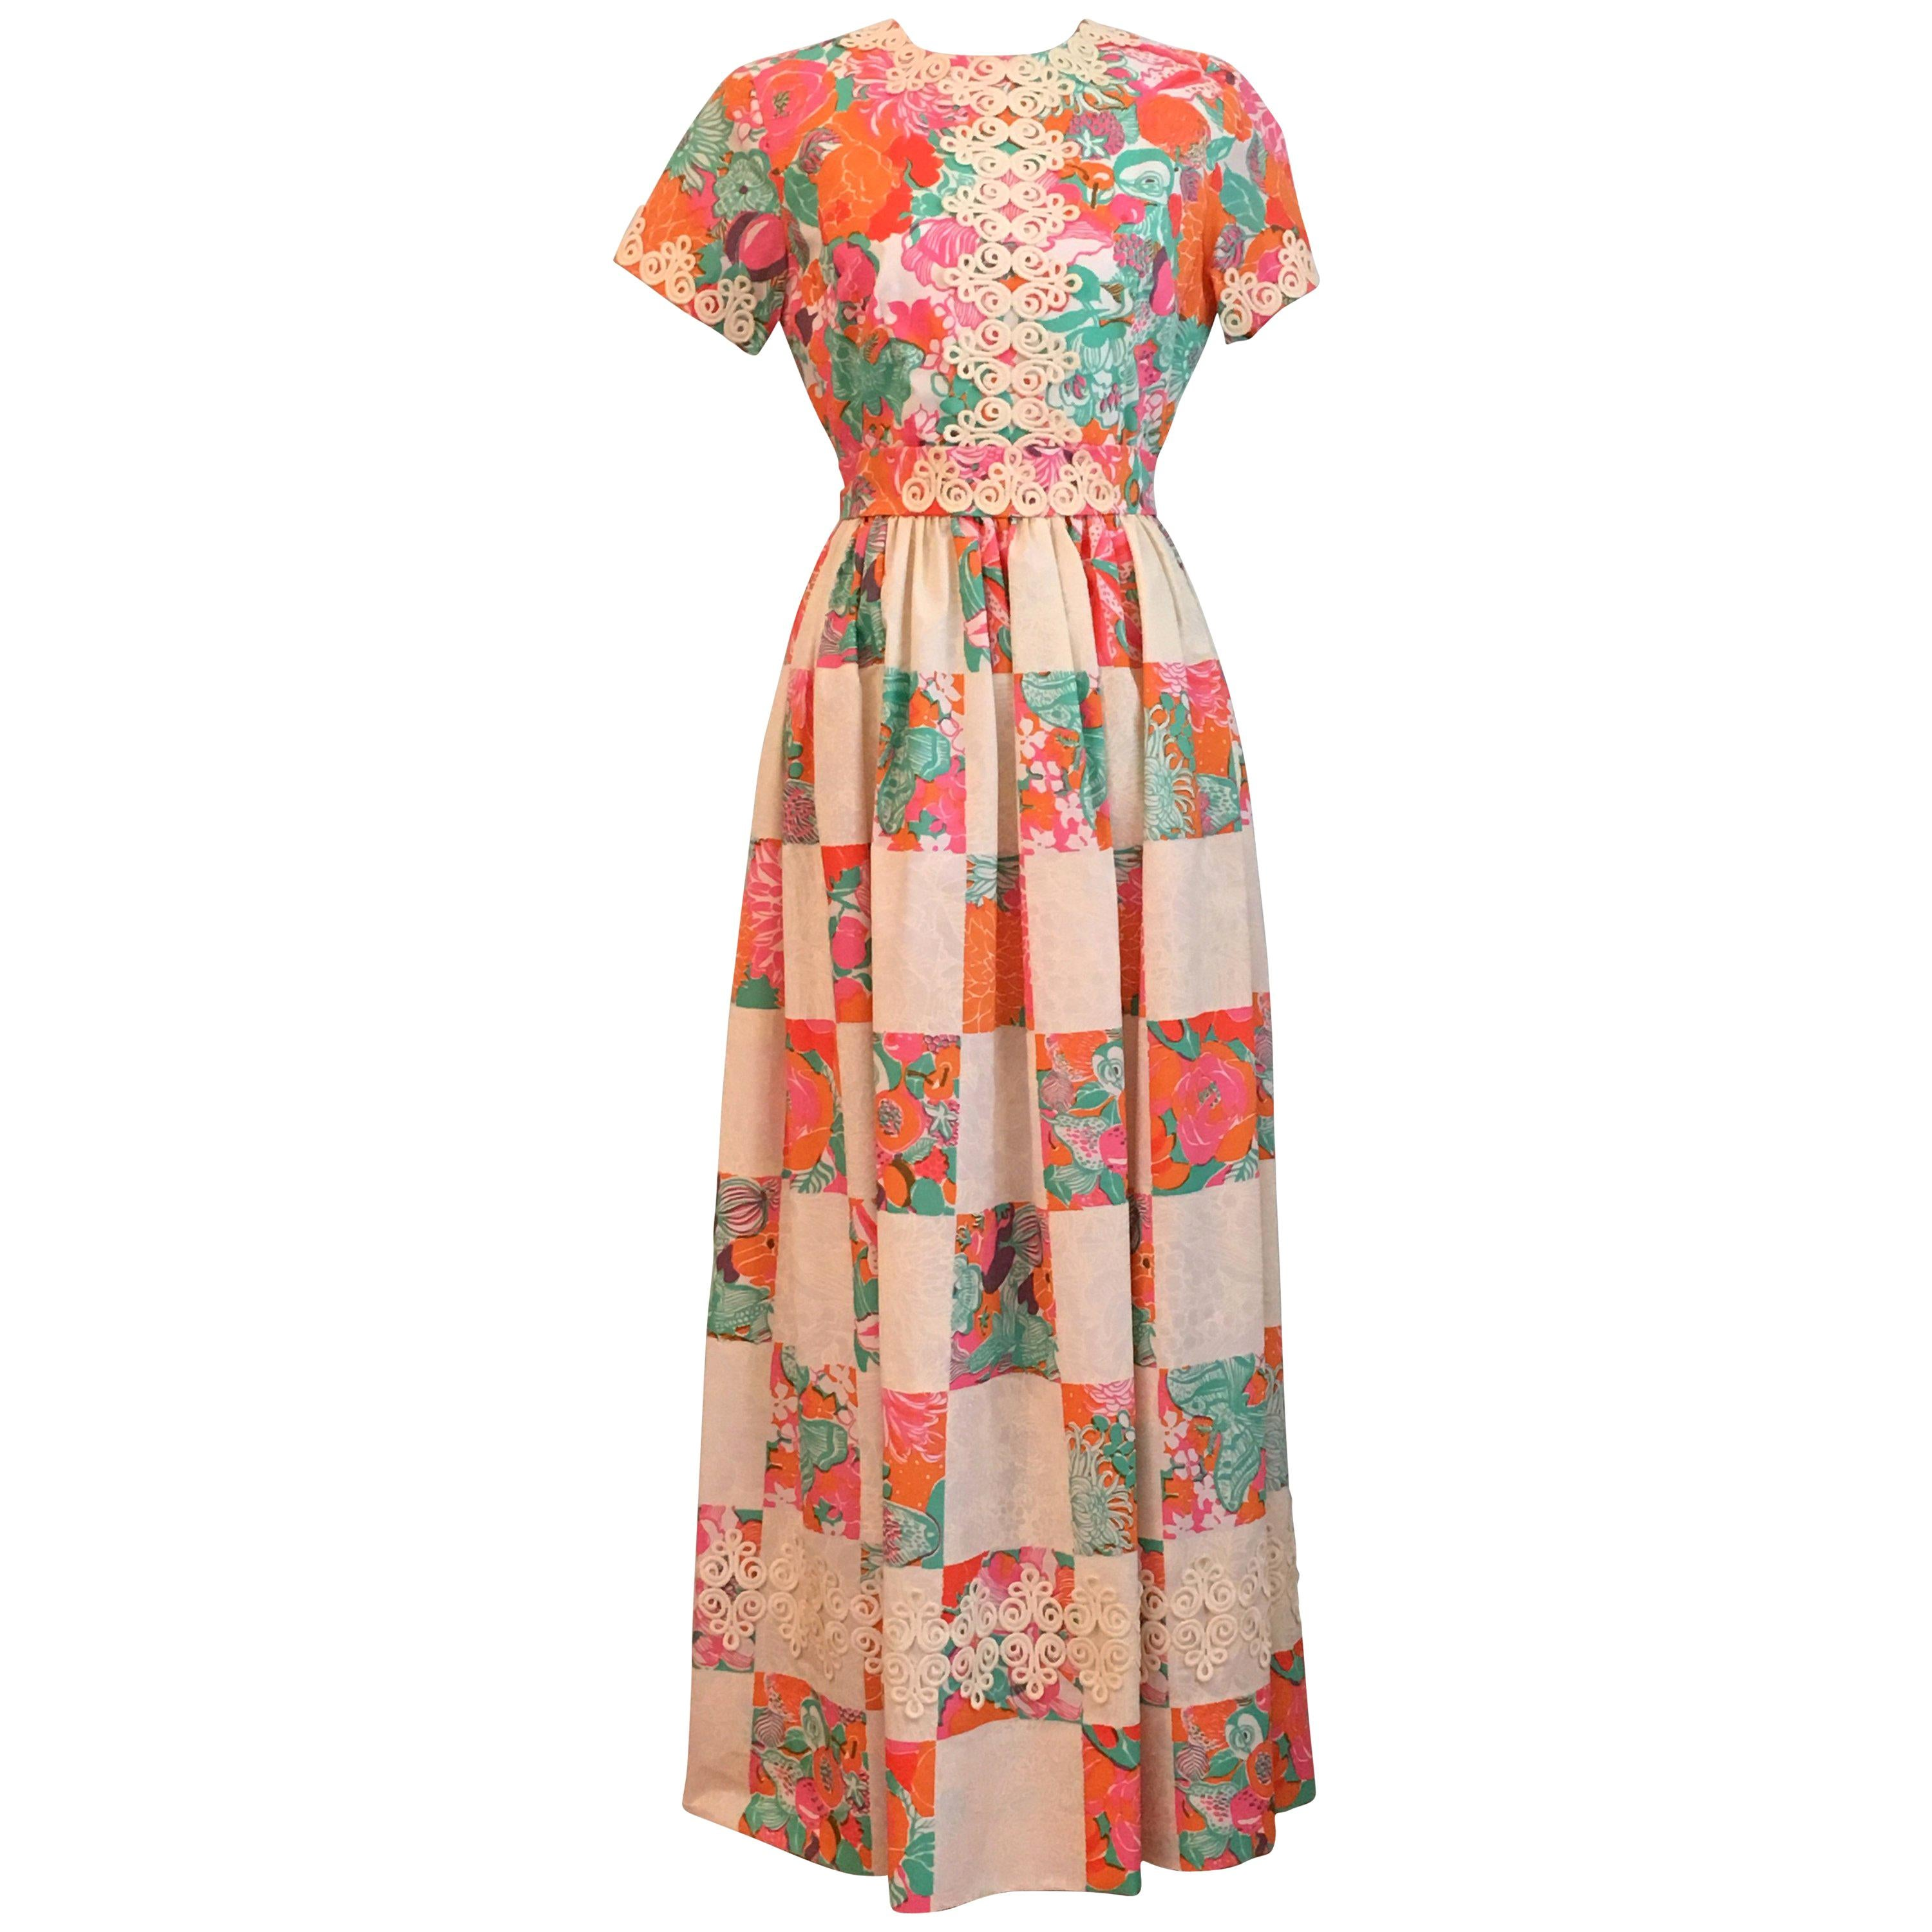 32a643fa669 Lilly Pulitzer Fruit and Floral Print Maxi Dress